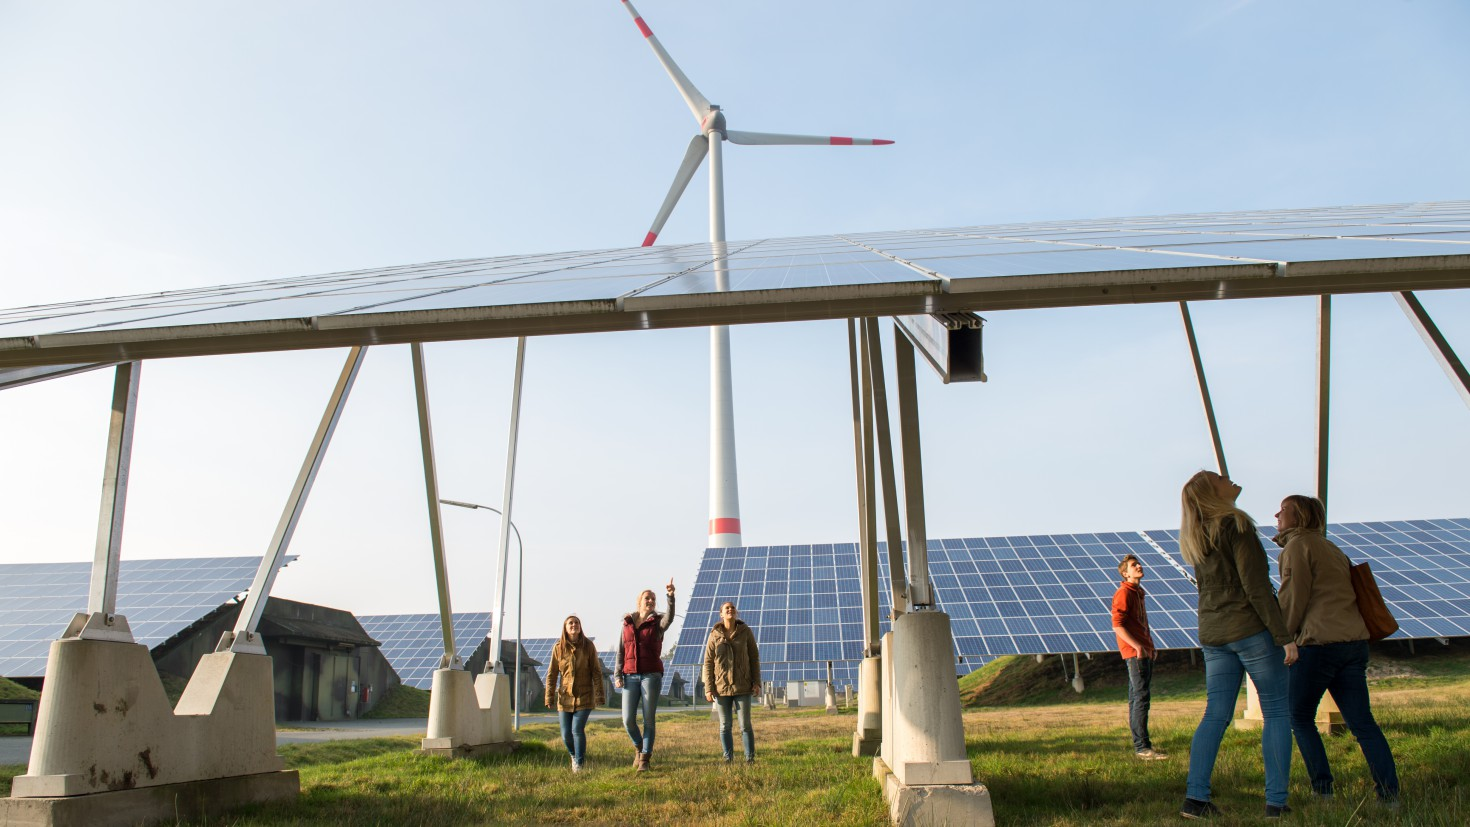 Which policies drive renewable energy development in Europe? PHOTO:German youth visiting a renewable energy park in Saerberg. Credit: Bente Stachowske, Greenpeace.